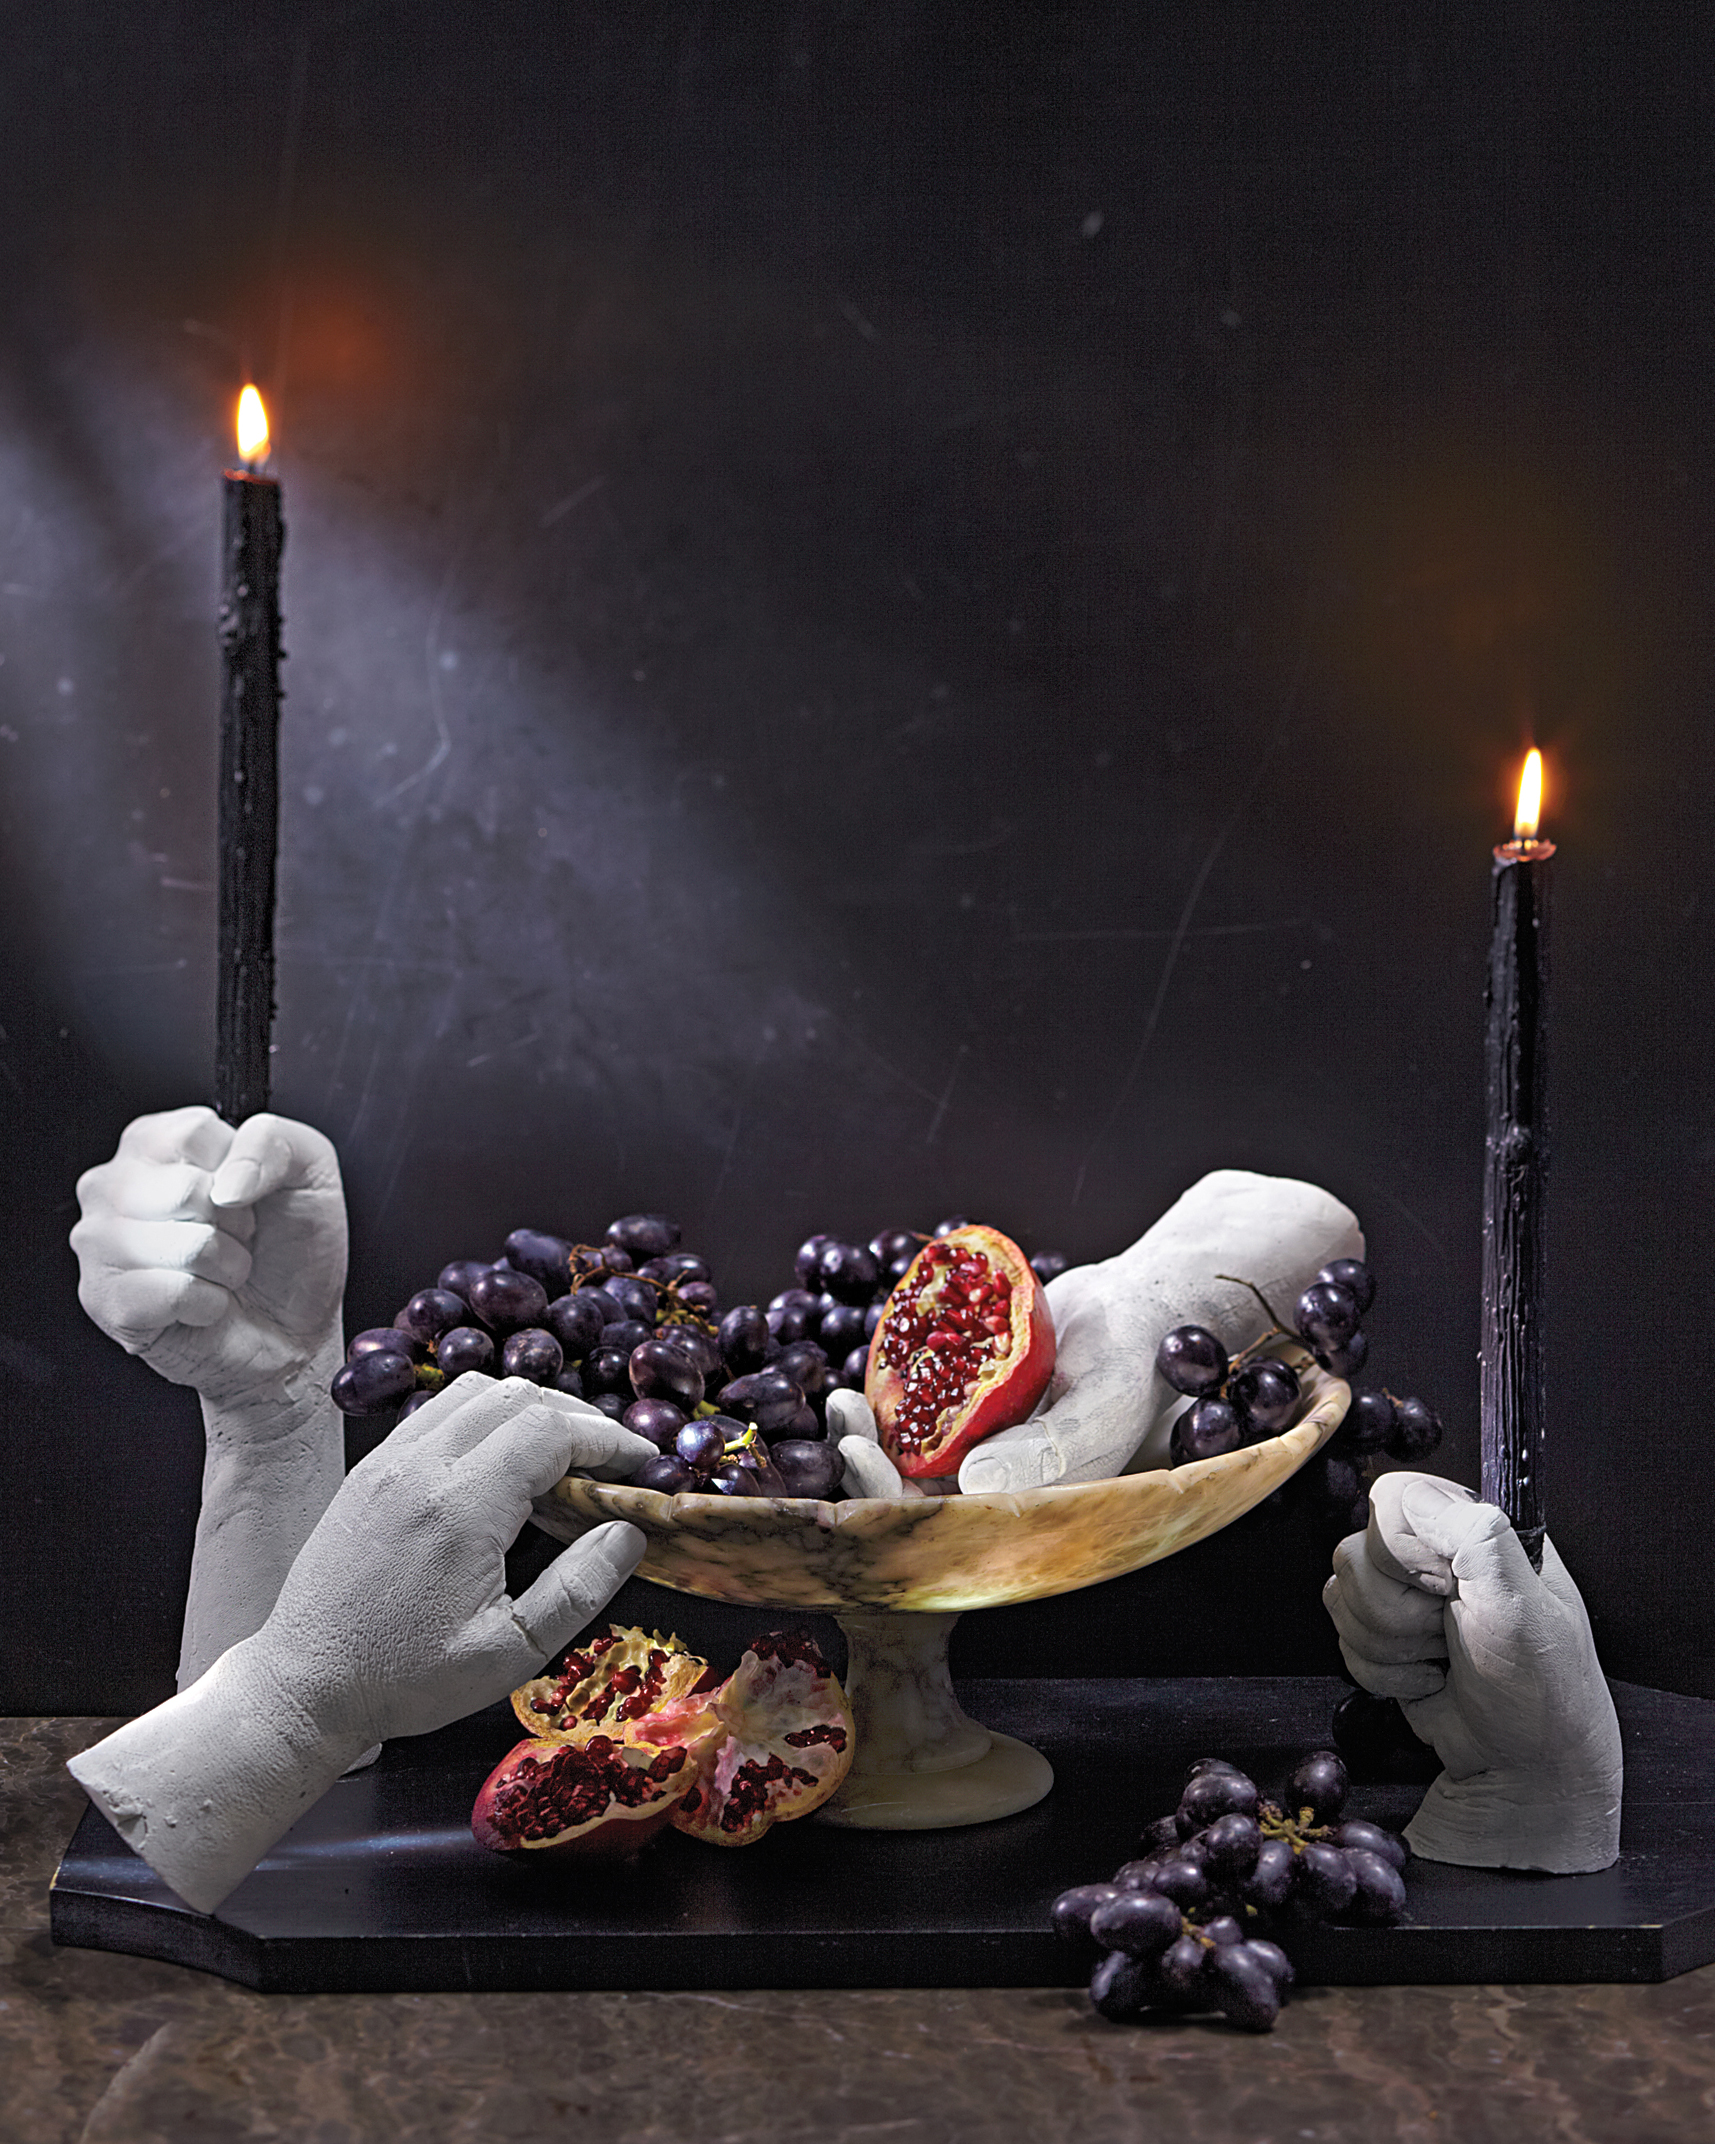 On Halloween, consider taking your fearin hand and making five-fingered candleholders and tabletop decorations.